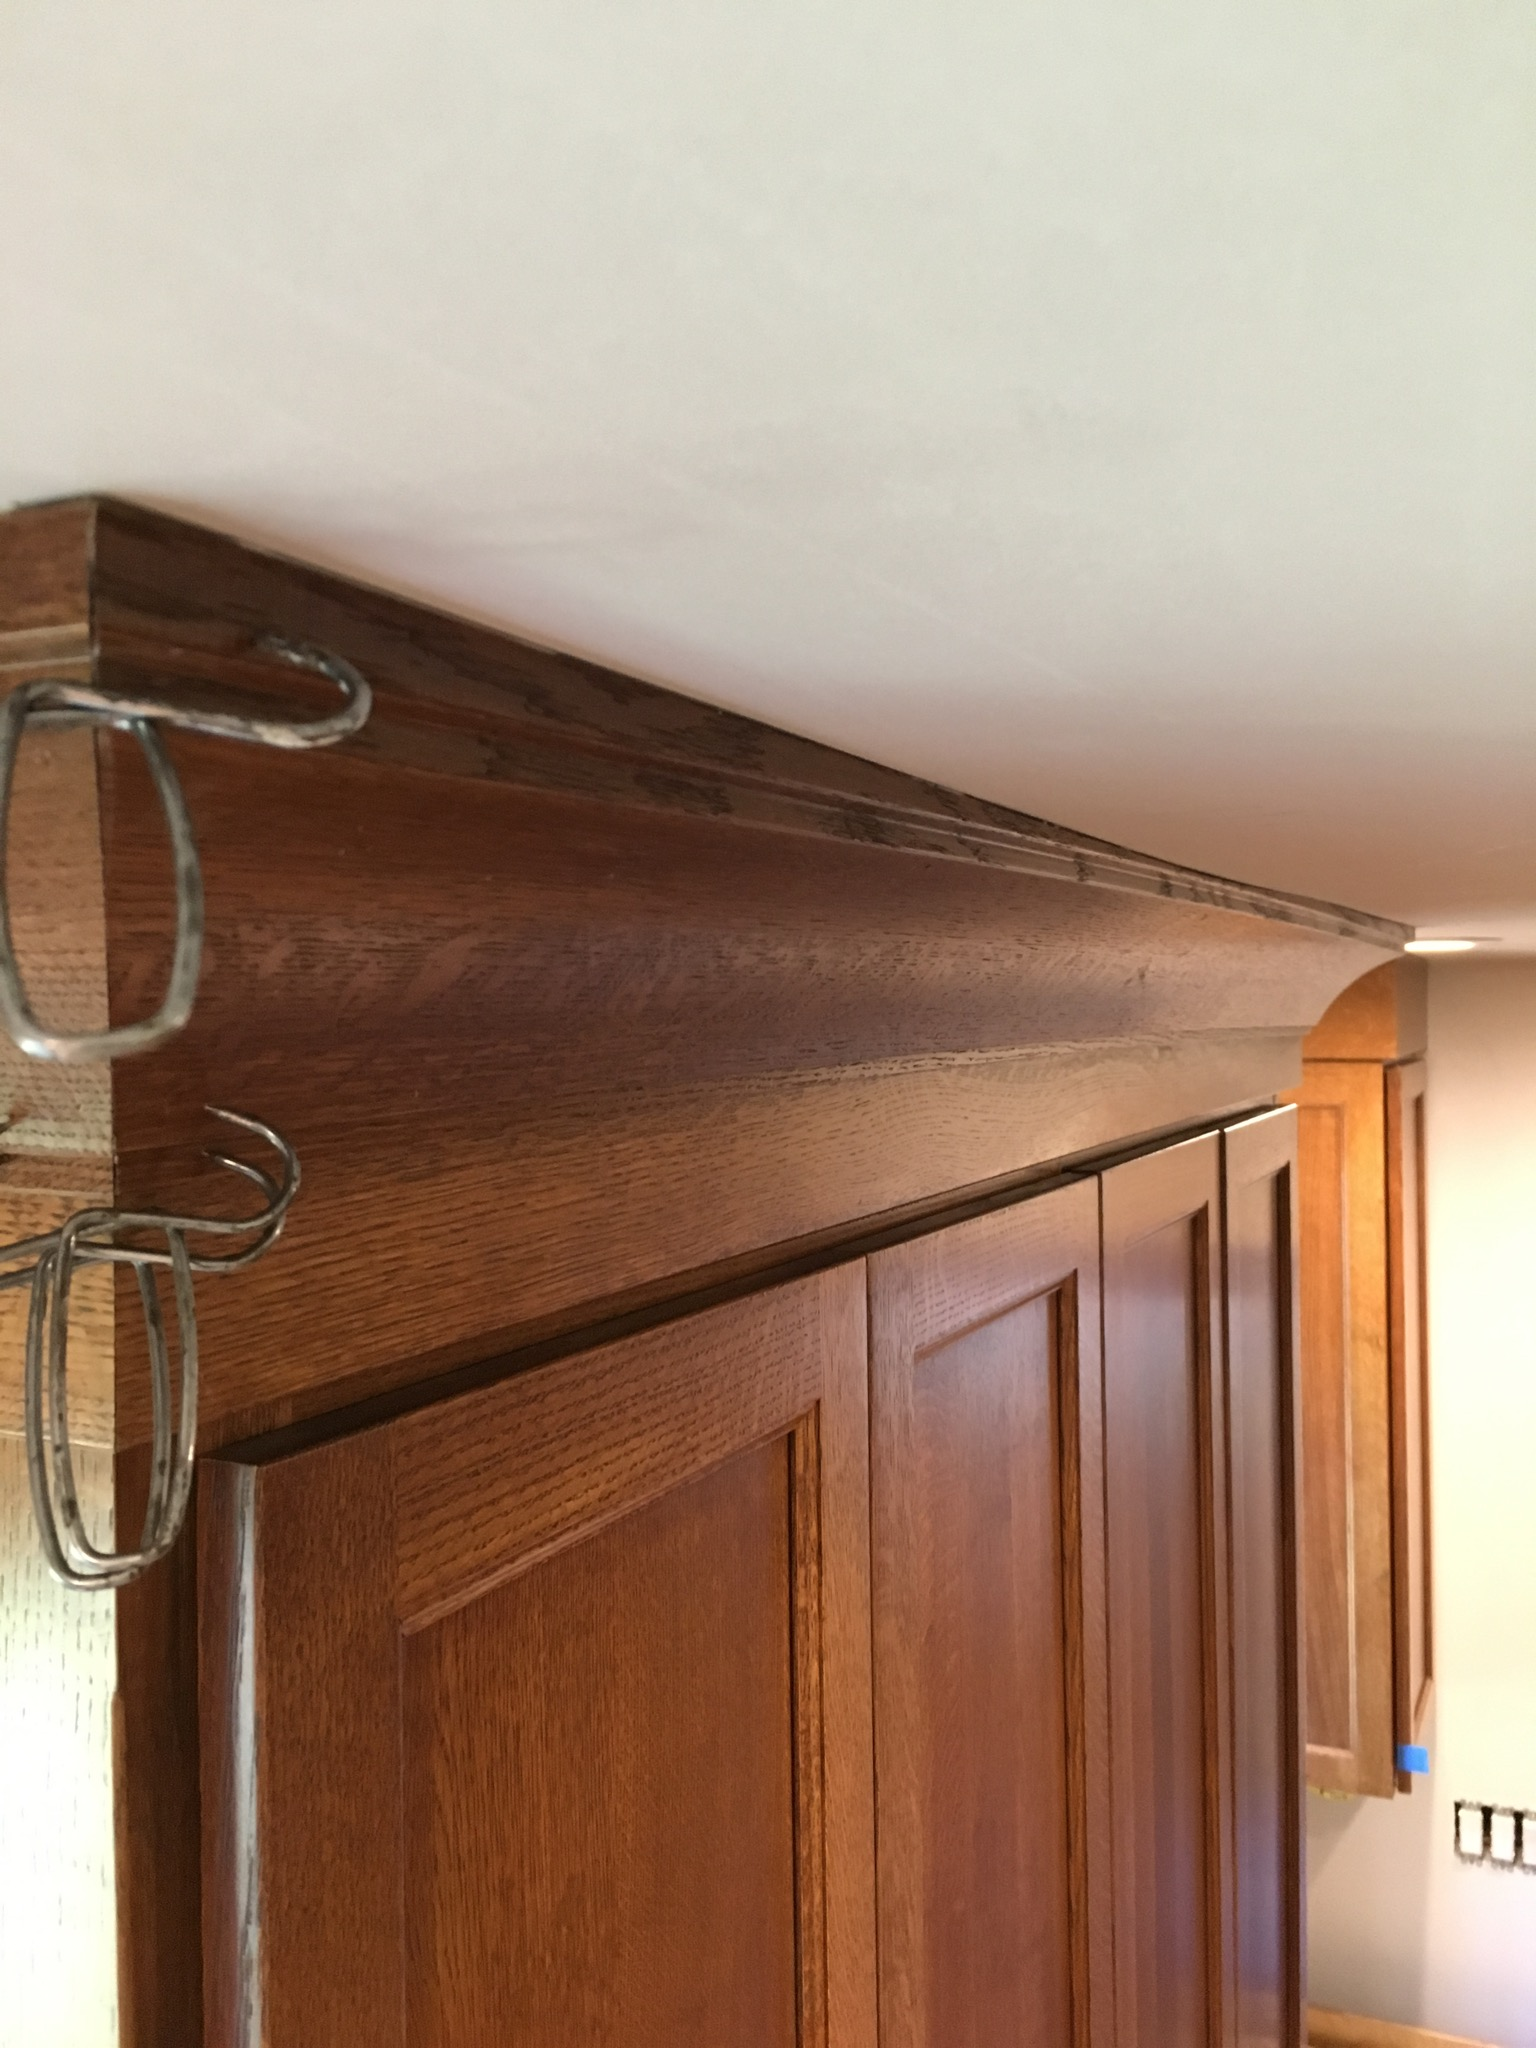 Installing Kitchen Cabinet Crown Molding Hiding A Wavy Ceiling In Crown Molding Fine Homebuilding